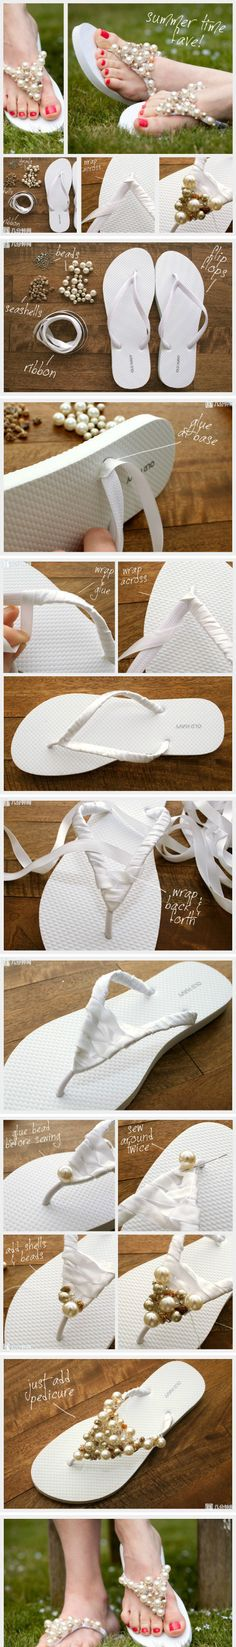 Cute and Easy DIY flip flops crafts-crafts-crafts Flip Flops Diy, Cheap Flip Flops, Diy Mode, Beaded Sandals, Jeweled Sandals, Diy Clothing, Diy Tutorial, Diy Fashion, Diy Wedding